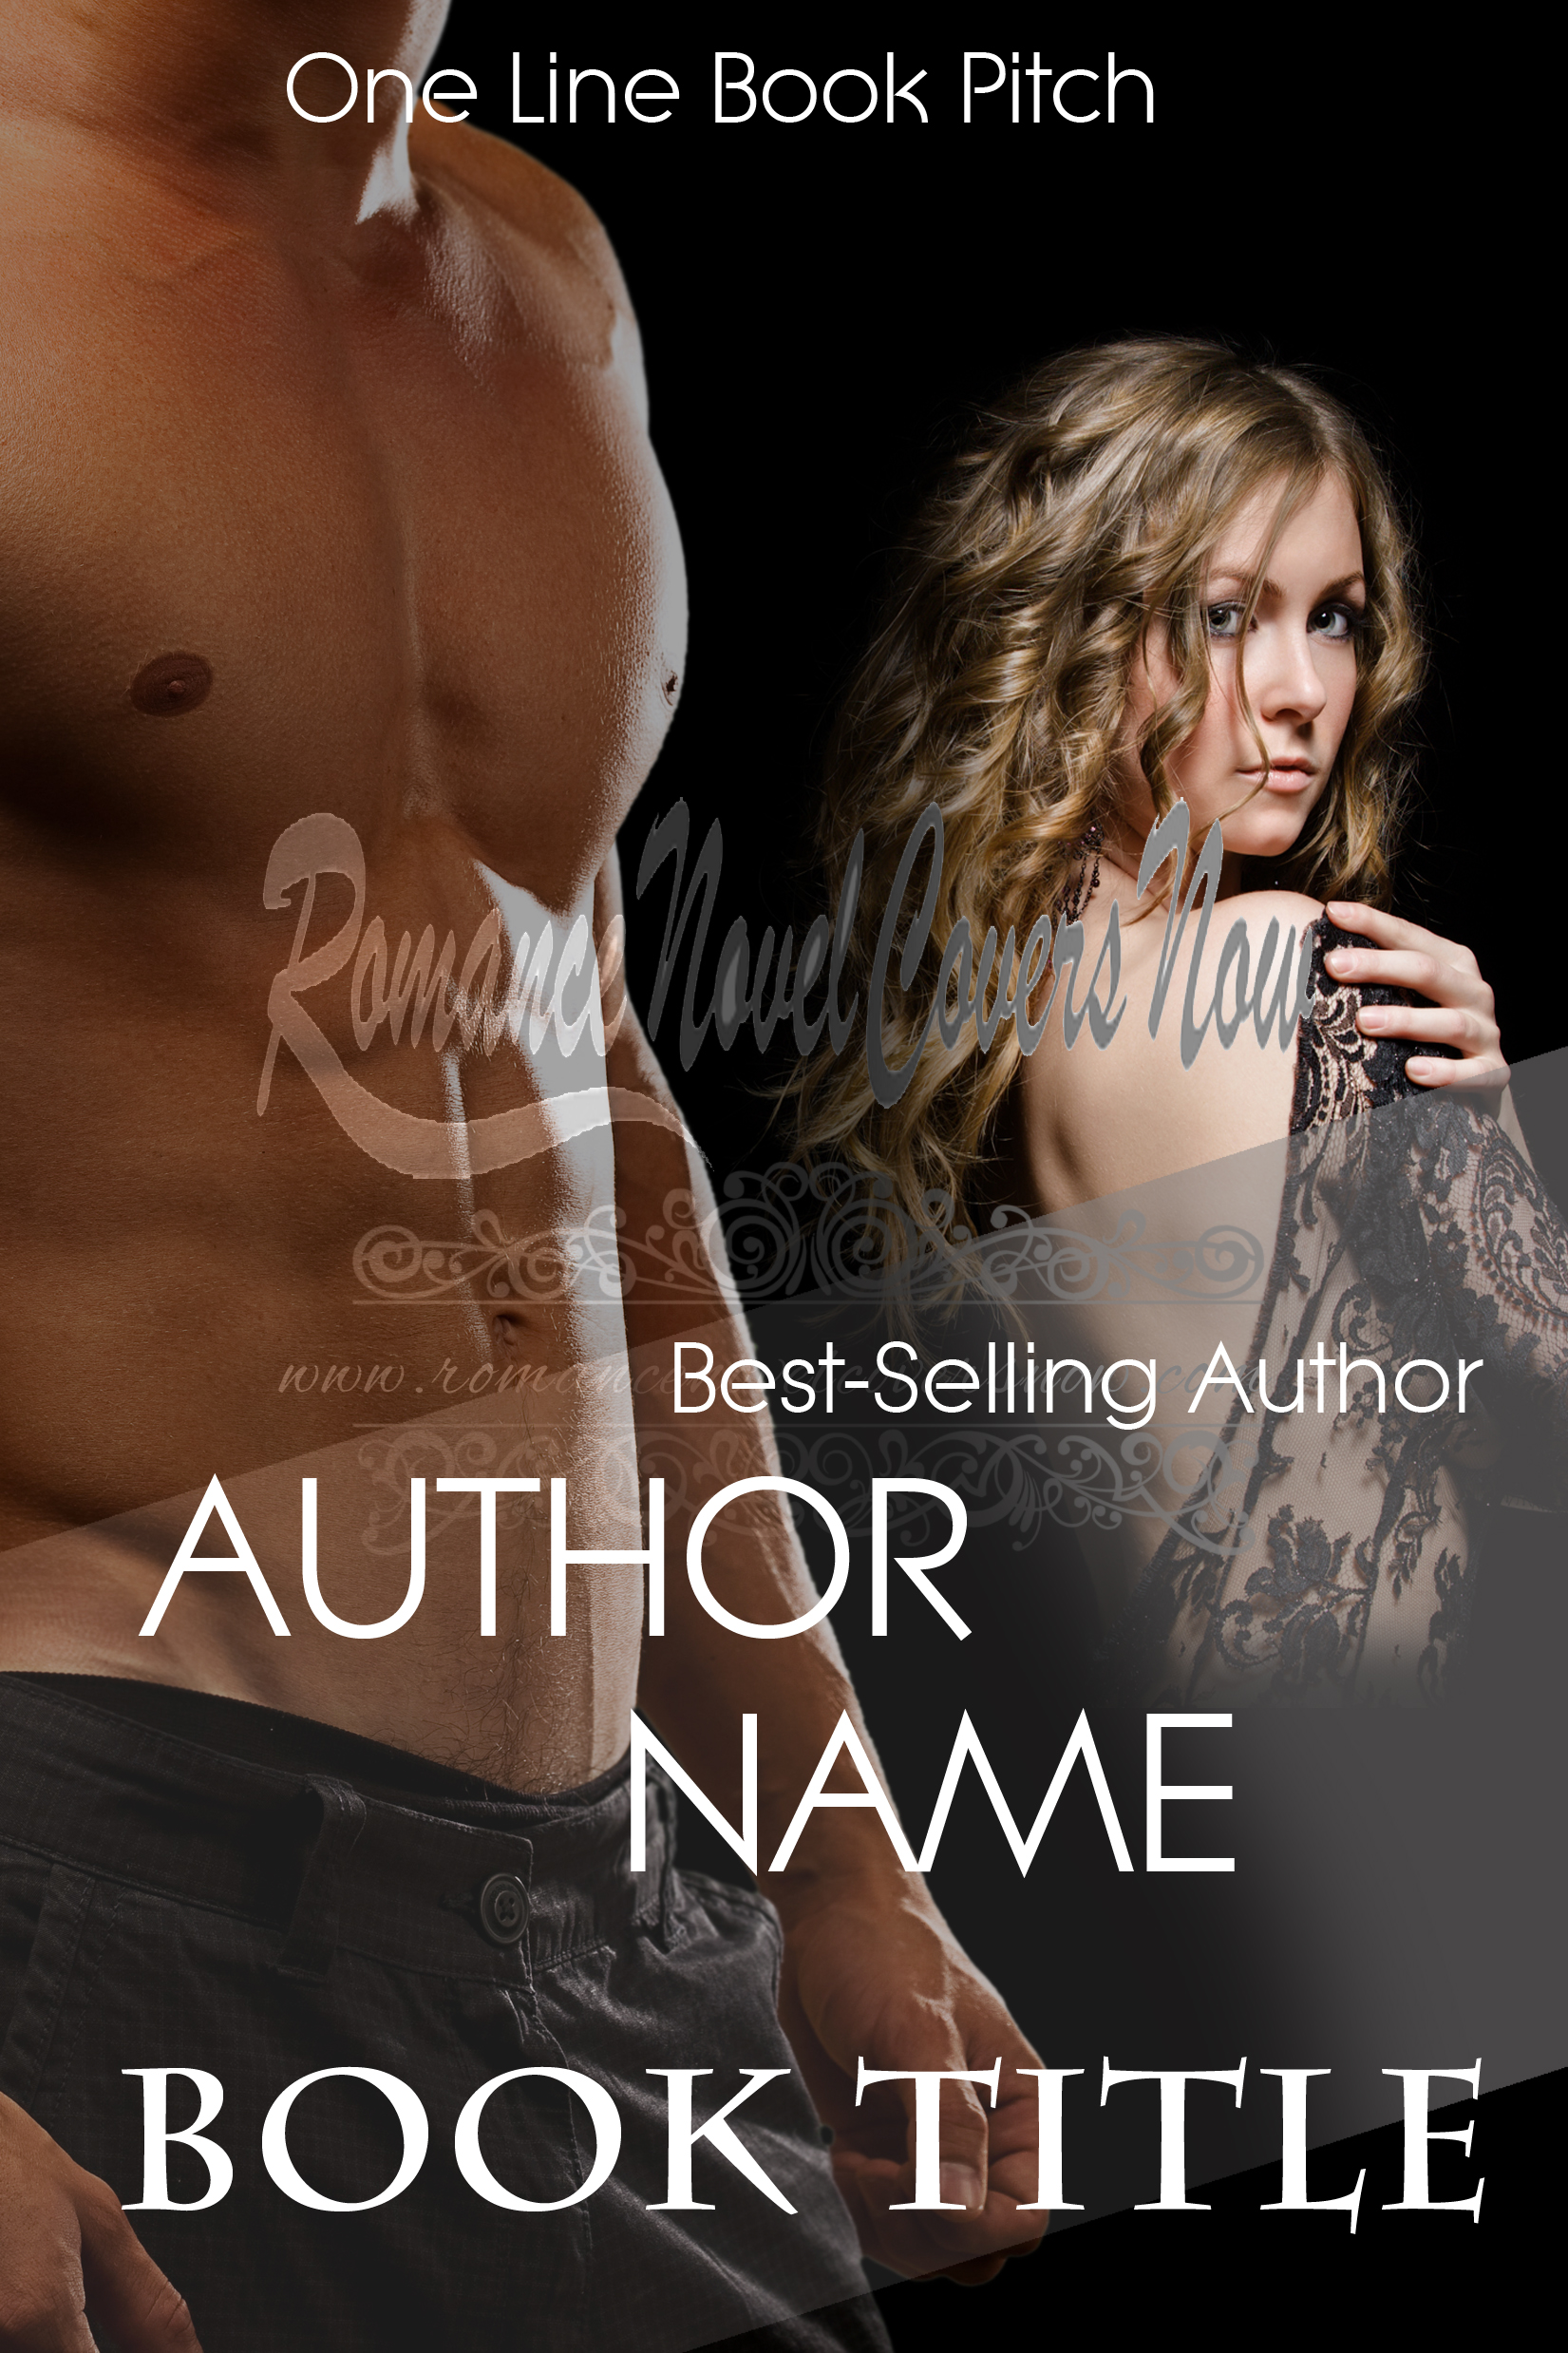 Hot Romance Book Covers : Couples sexy romance novel covers now